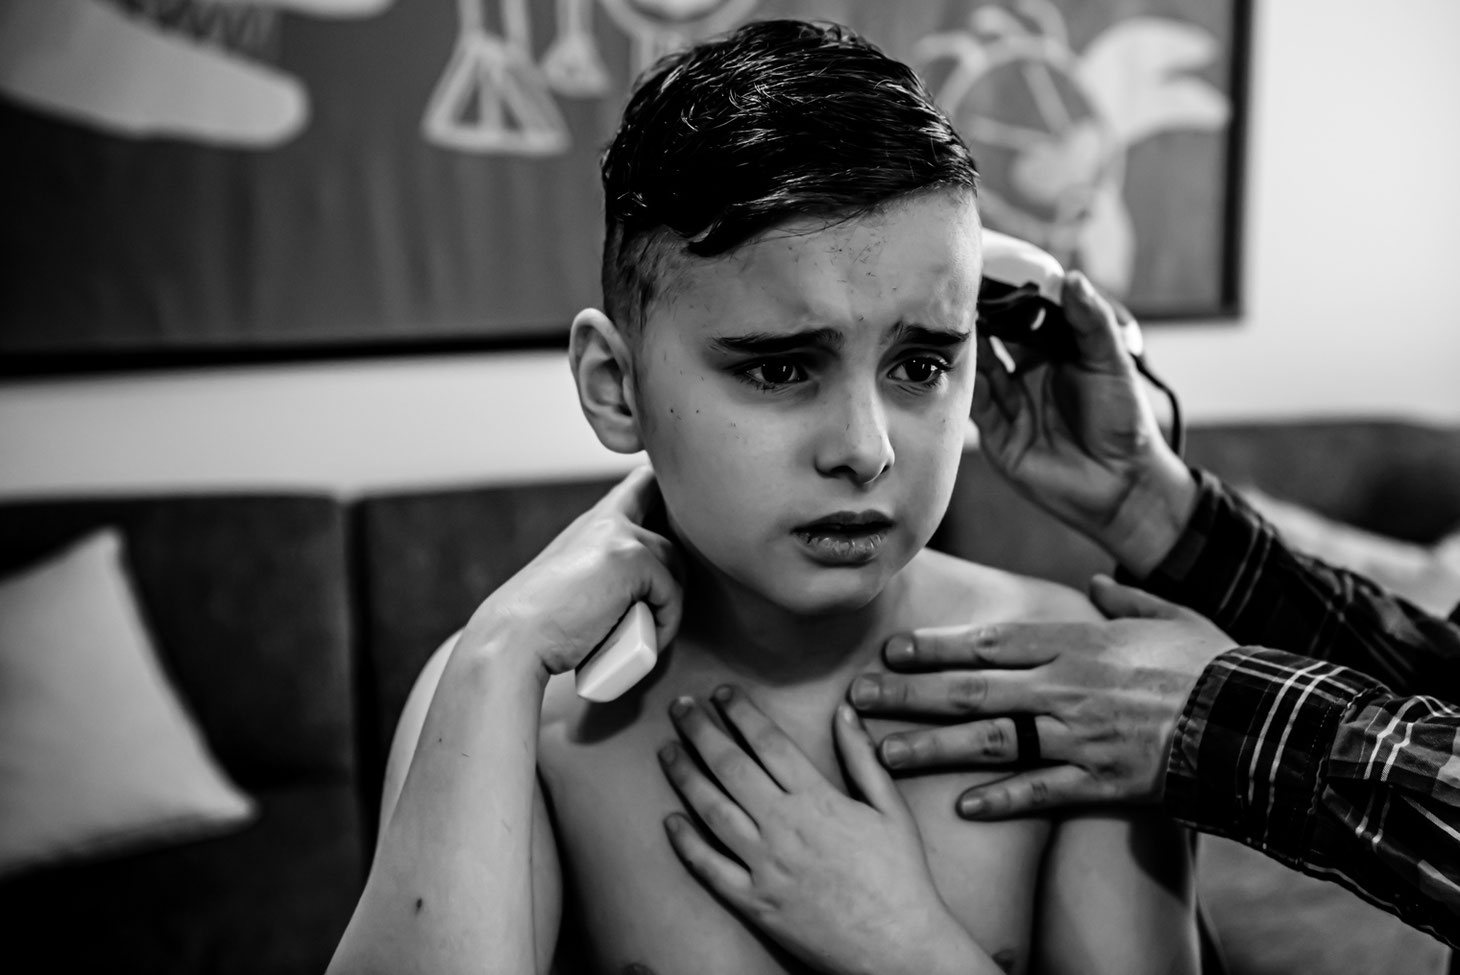 Black and white photo of mom giving child a haircut. Son looks unhappy.